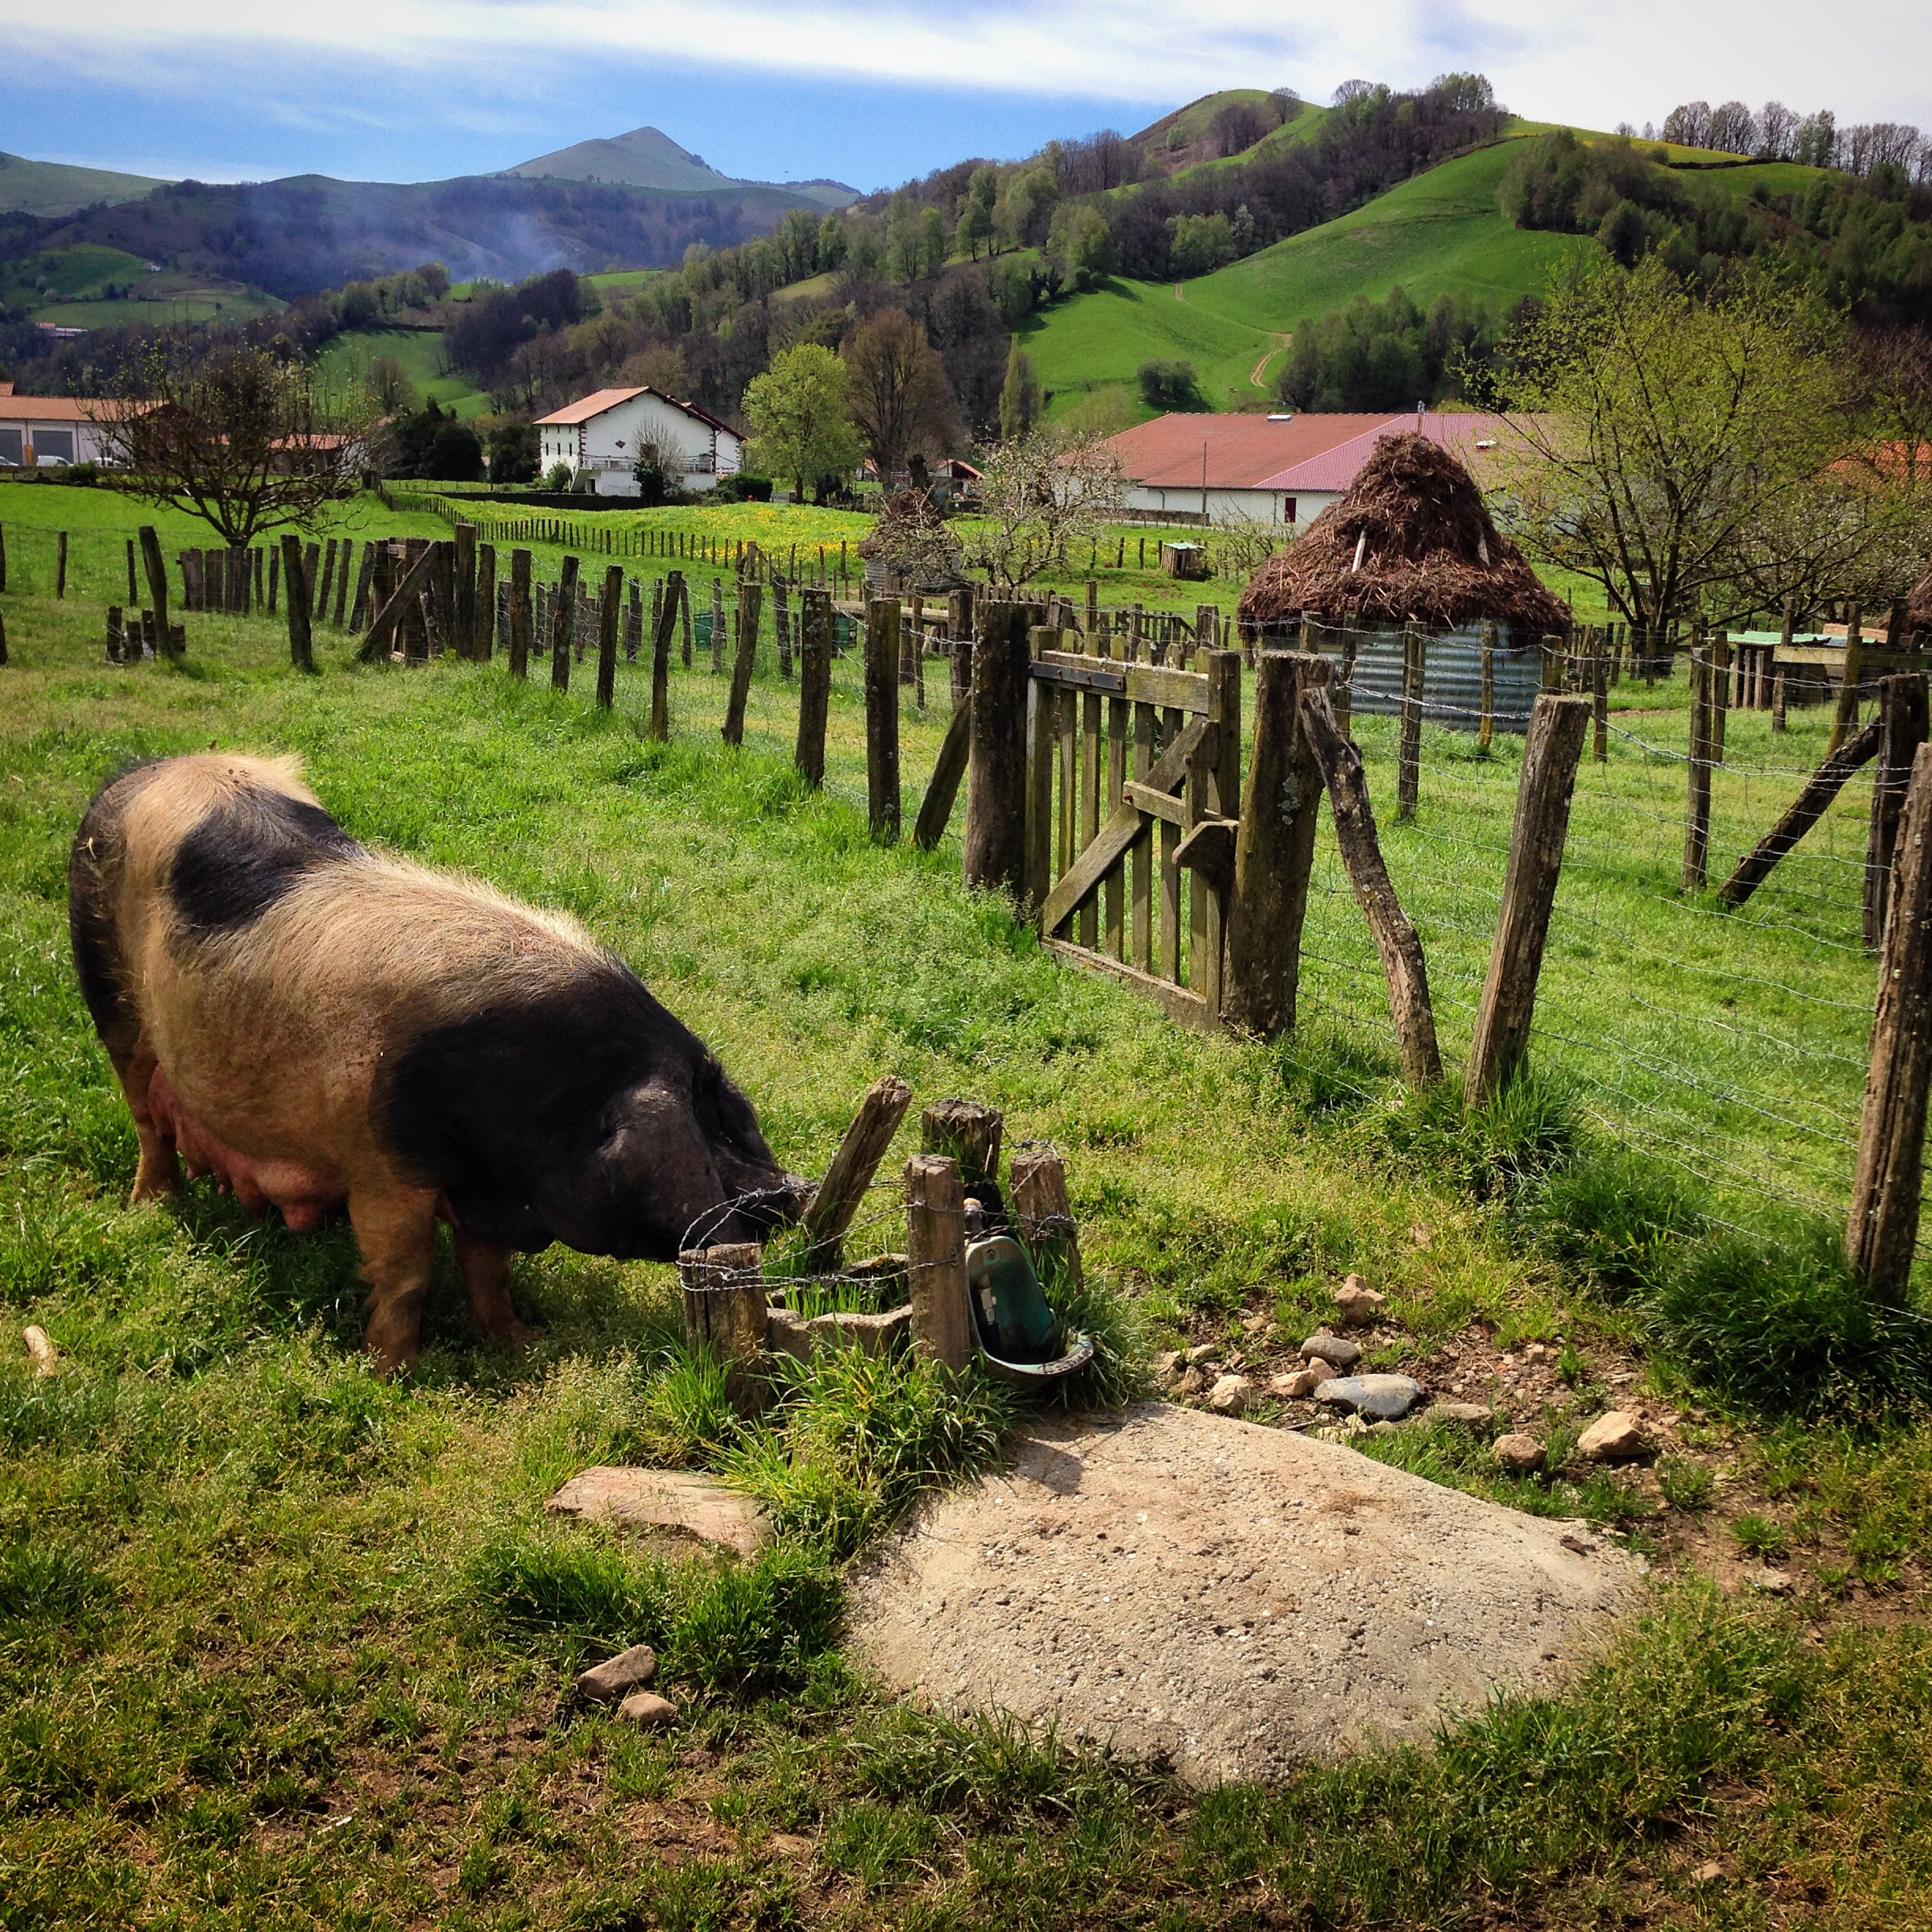 The famous Basque Pig in its native setting